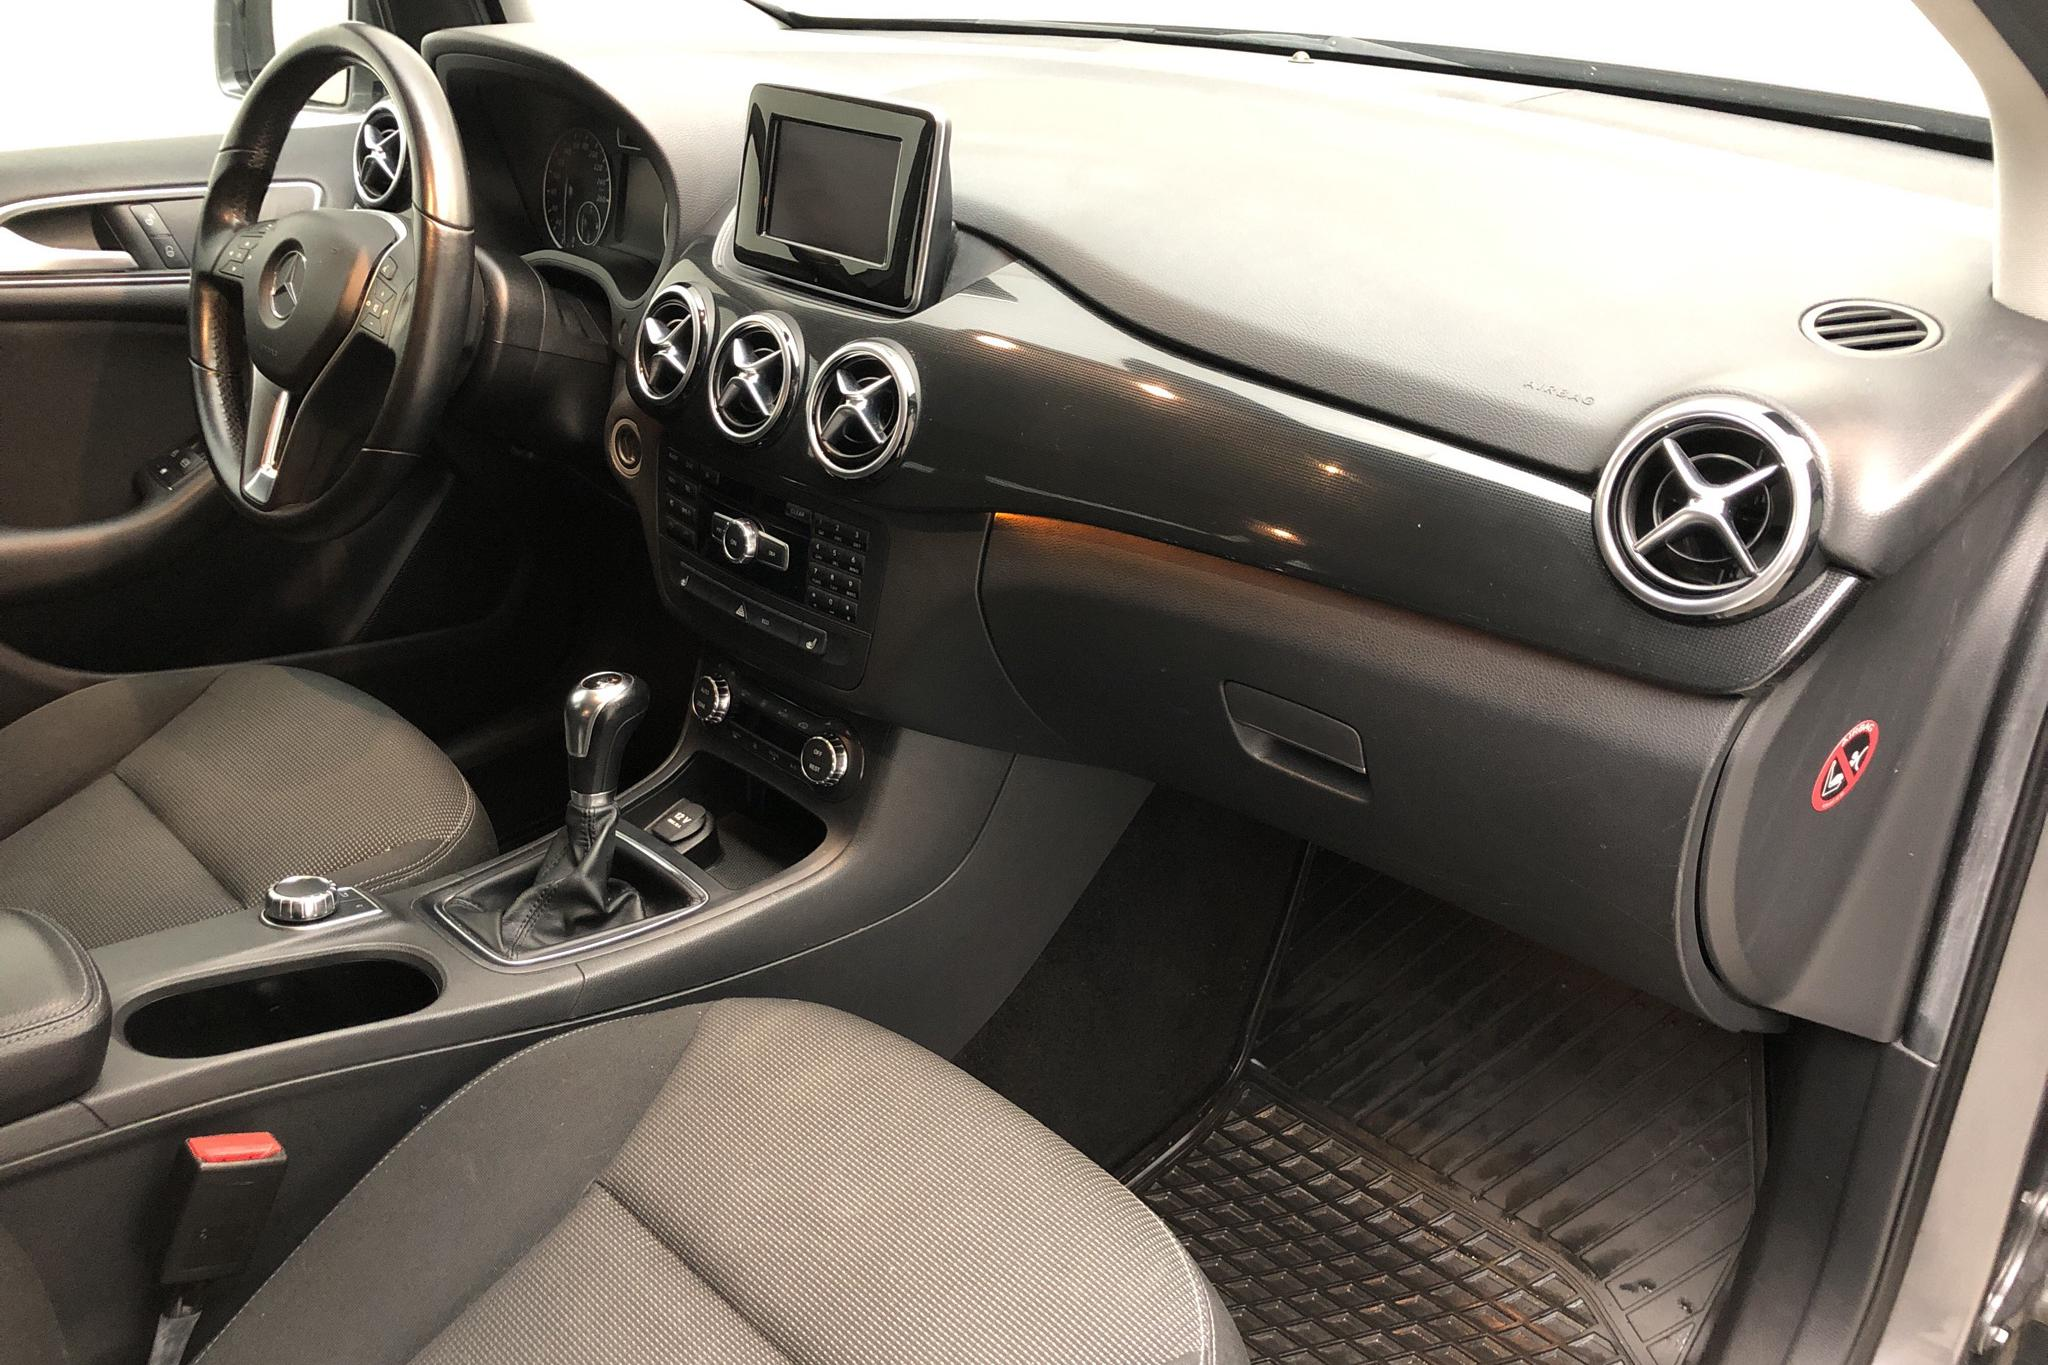 Mercedes B 180 CDI W246 (109hk) - 117 170 km - Manual - Dark Grey - 2012